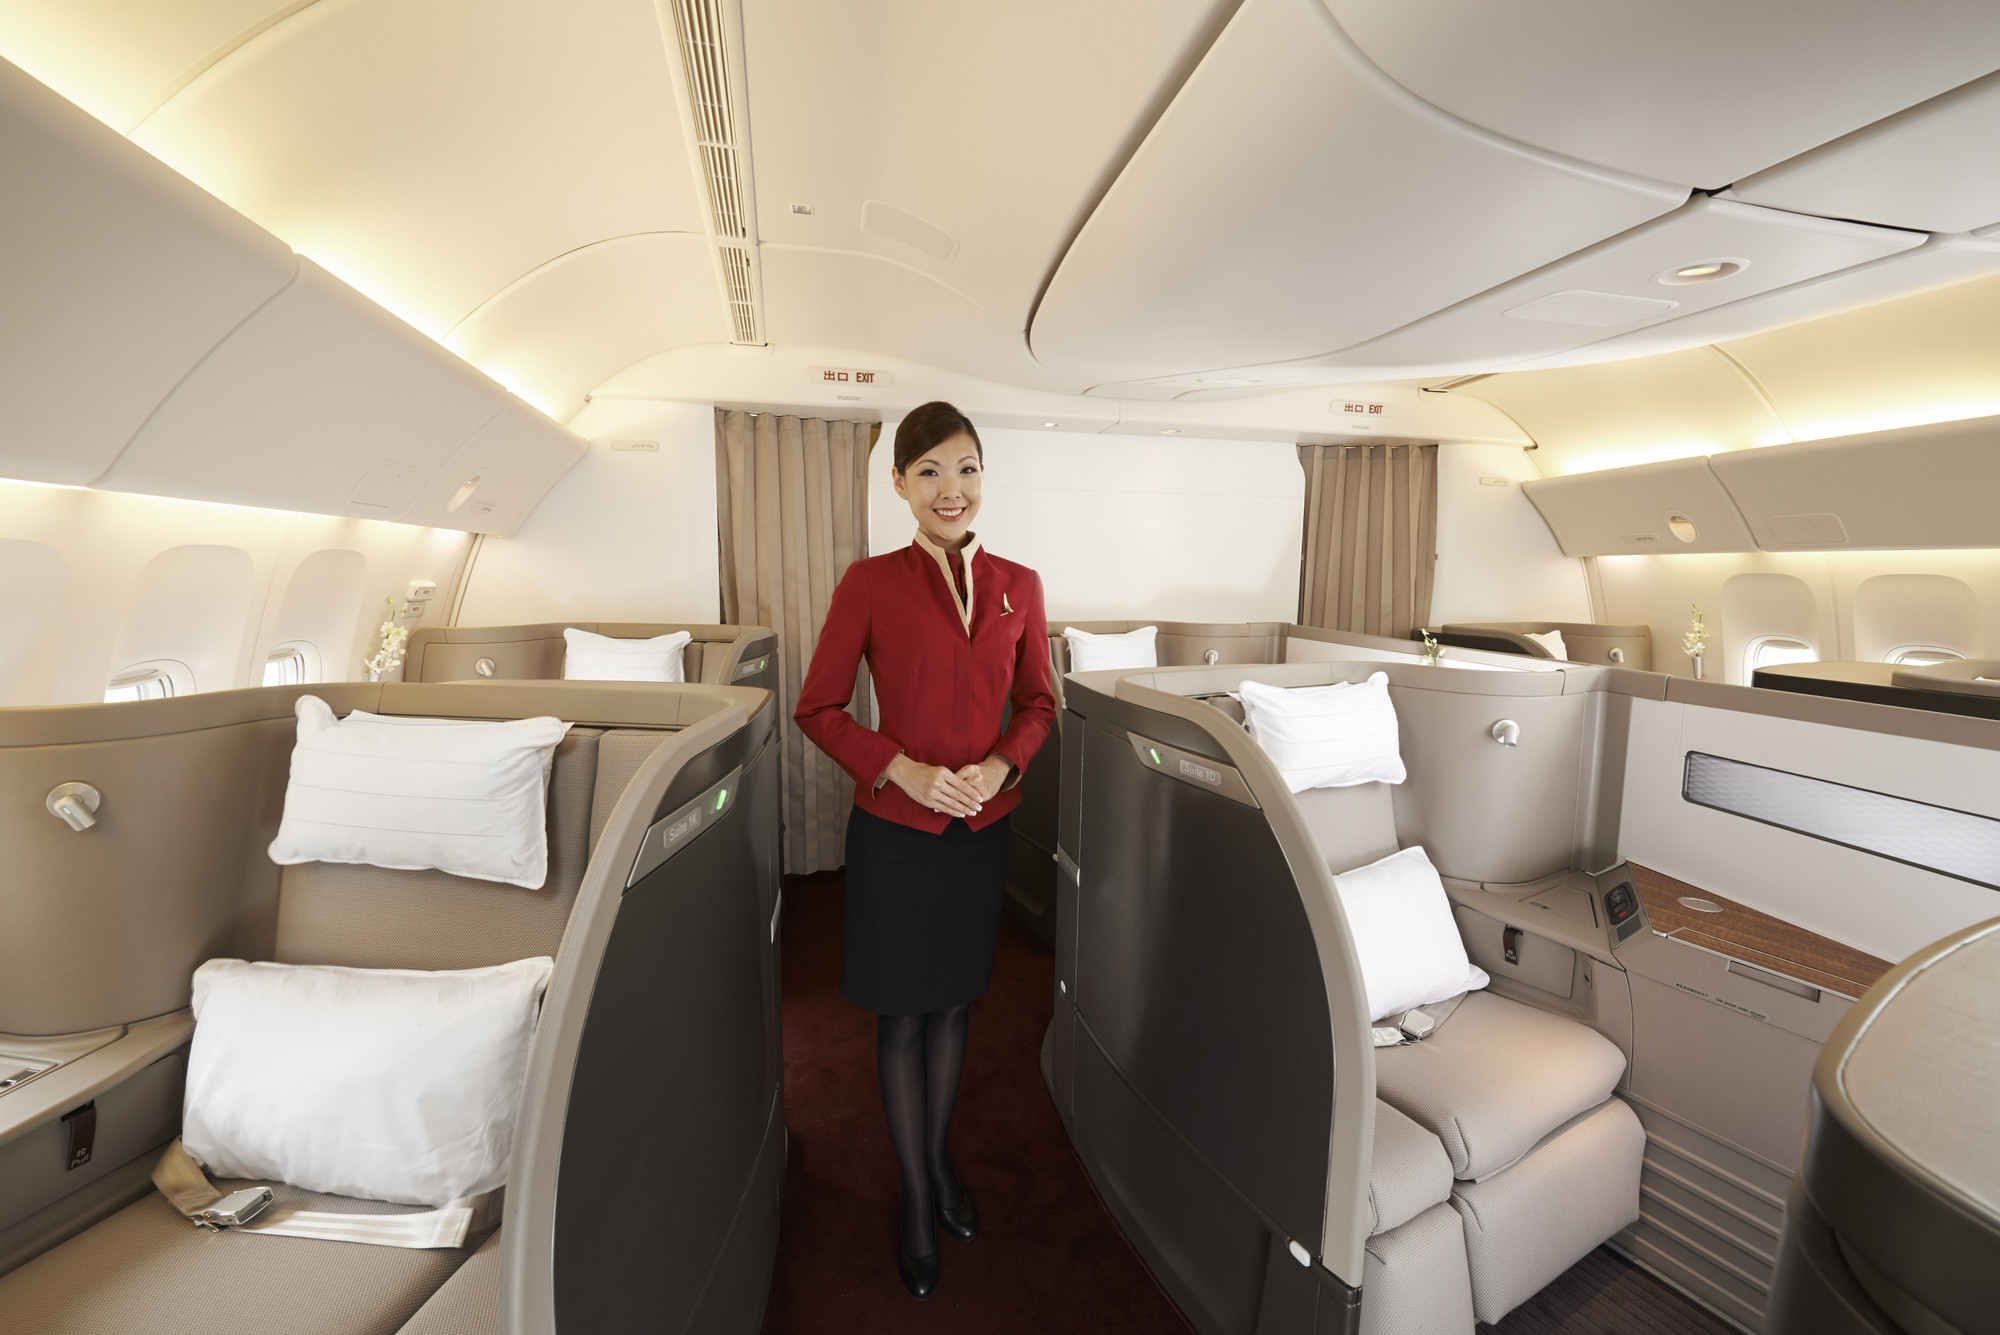 First Class Cabin designed by Foster + Partners. © Steve Wong